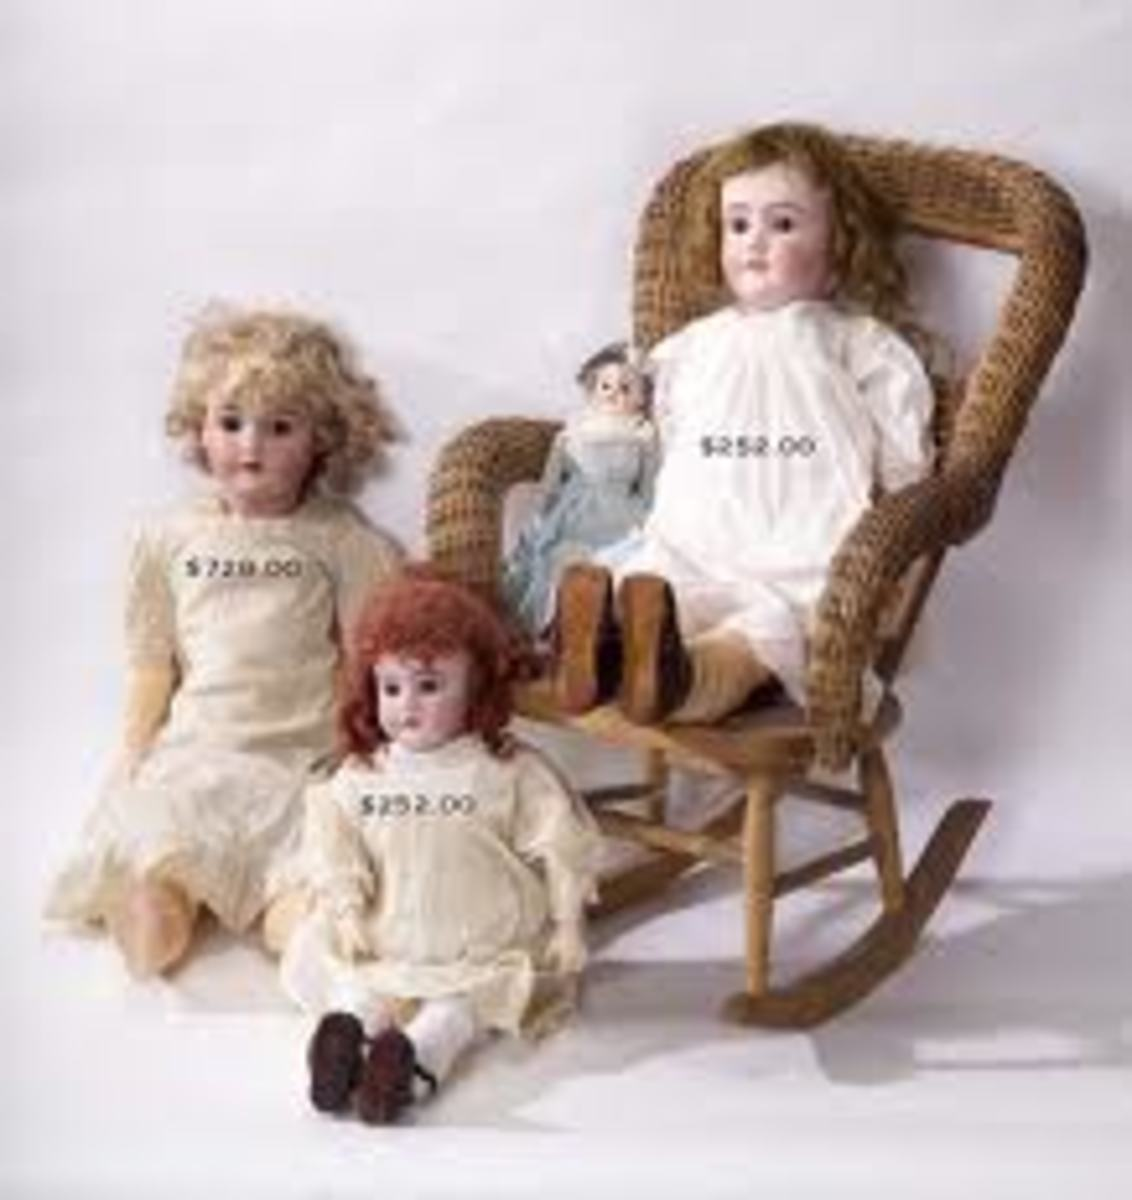 Old valuable dolls can be found